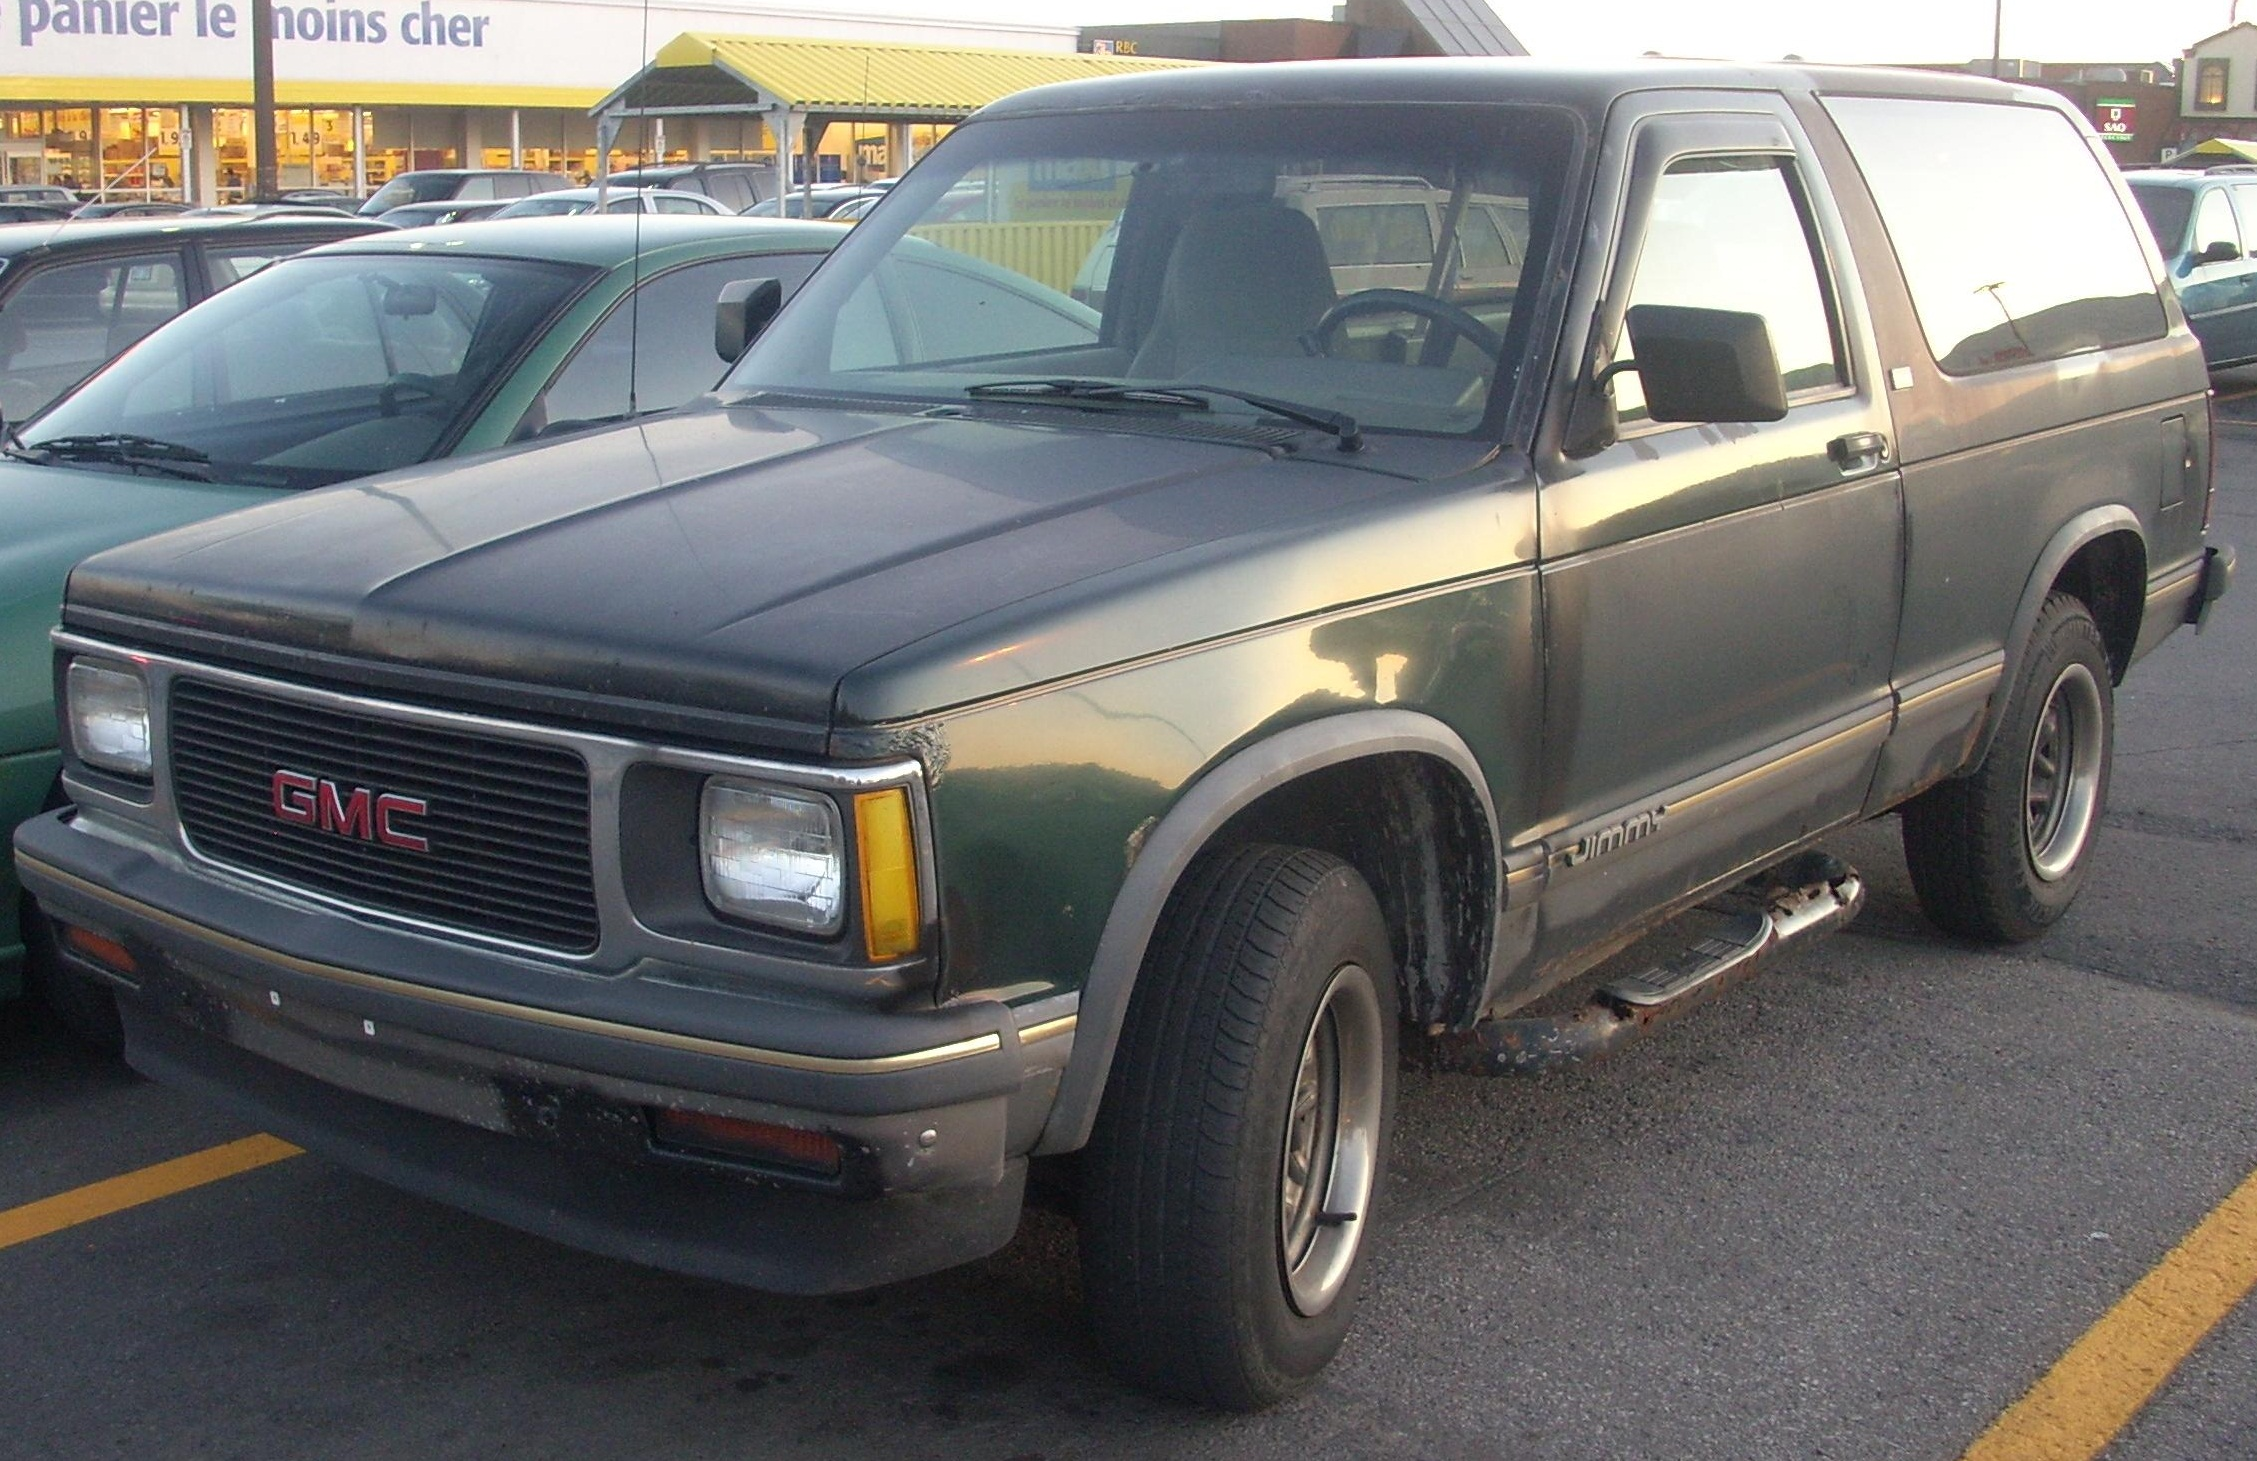 File\u002793-\u002794 GMC Jimmy 2-Door.jpg & File:\u002793-\u002794 GMC Jimmy 2-Door.jpg - Wikimedia Commons